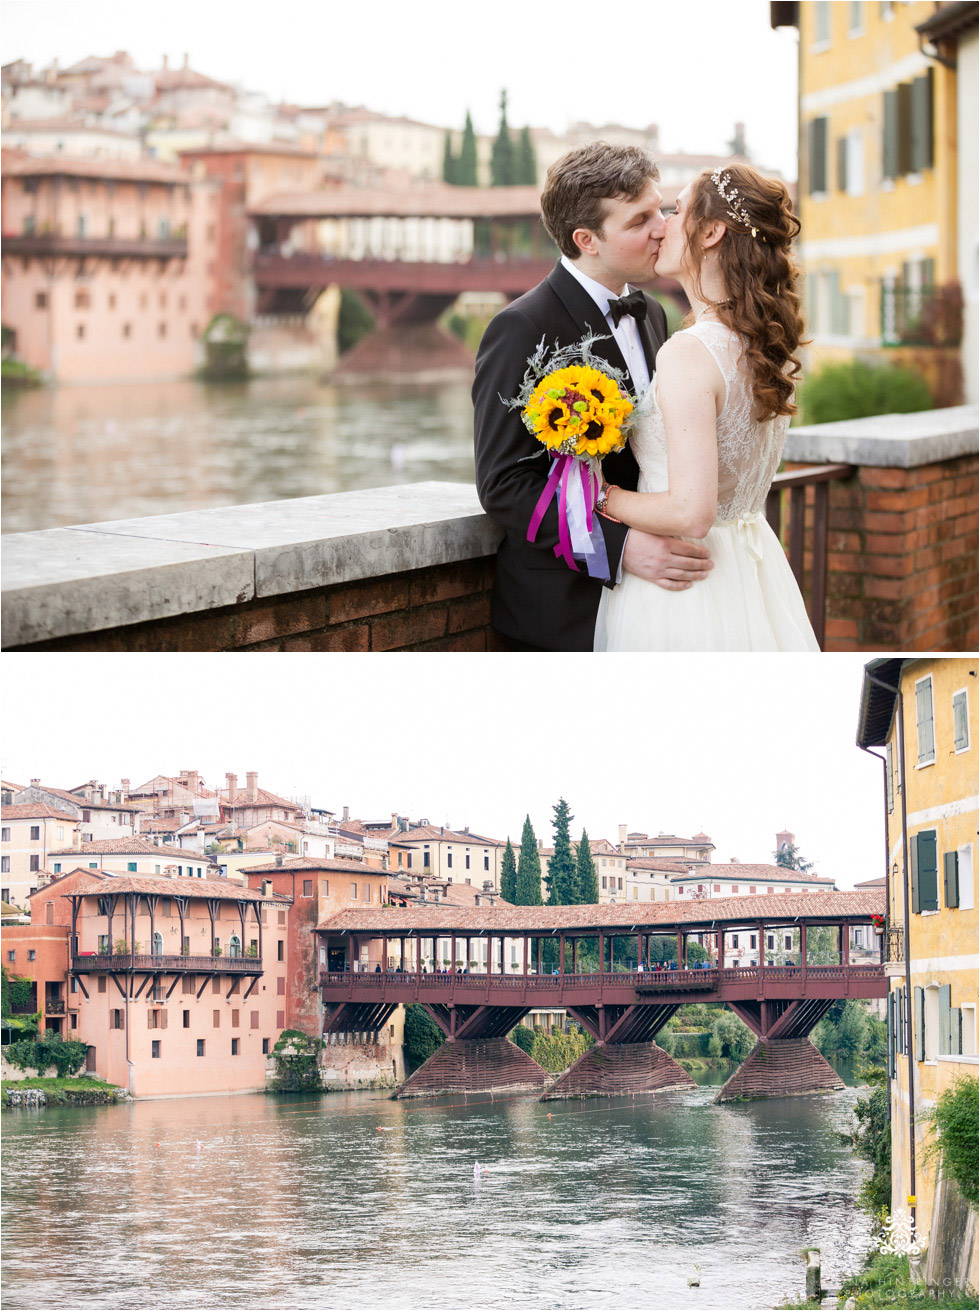 Wedding couple and Ponte Vecchio in Bassano del Grappa, Italy - Blog of Nina Hintringer Photography - Wedding Photography, Wedding Reportage and Destination Weddings